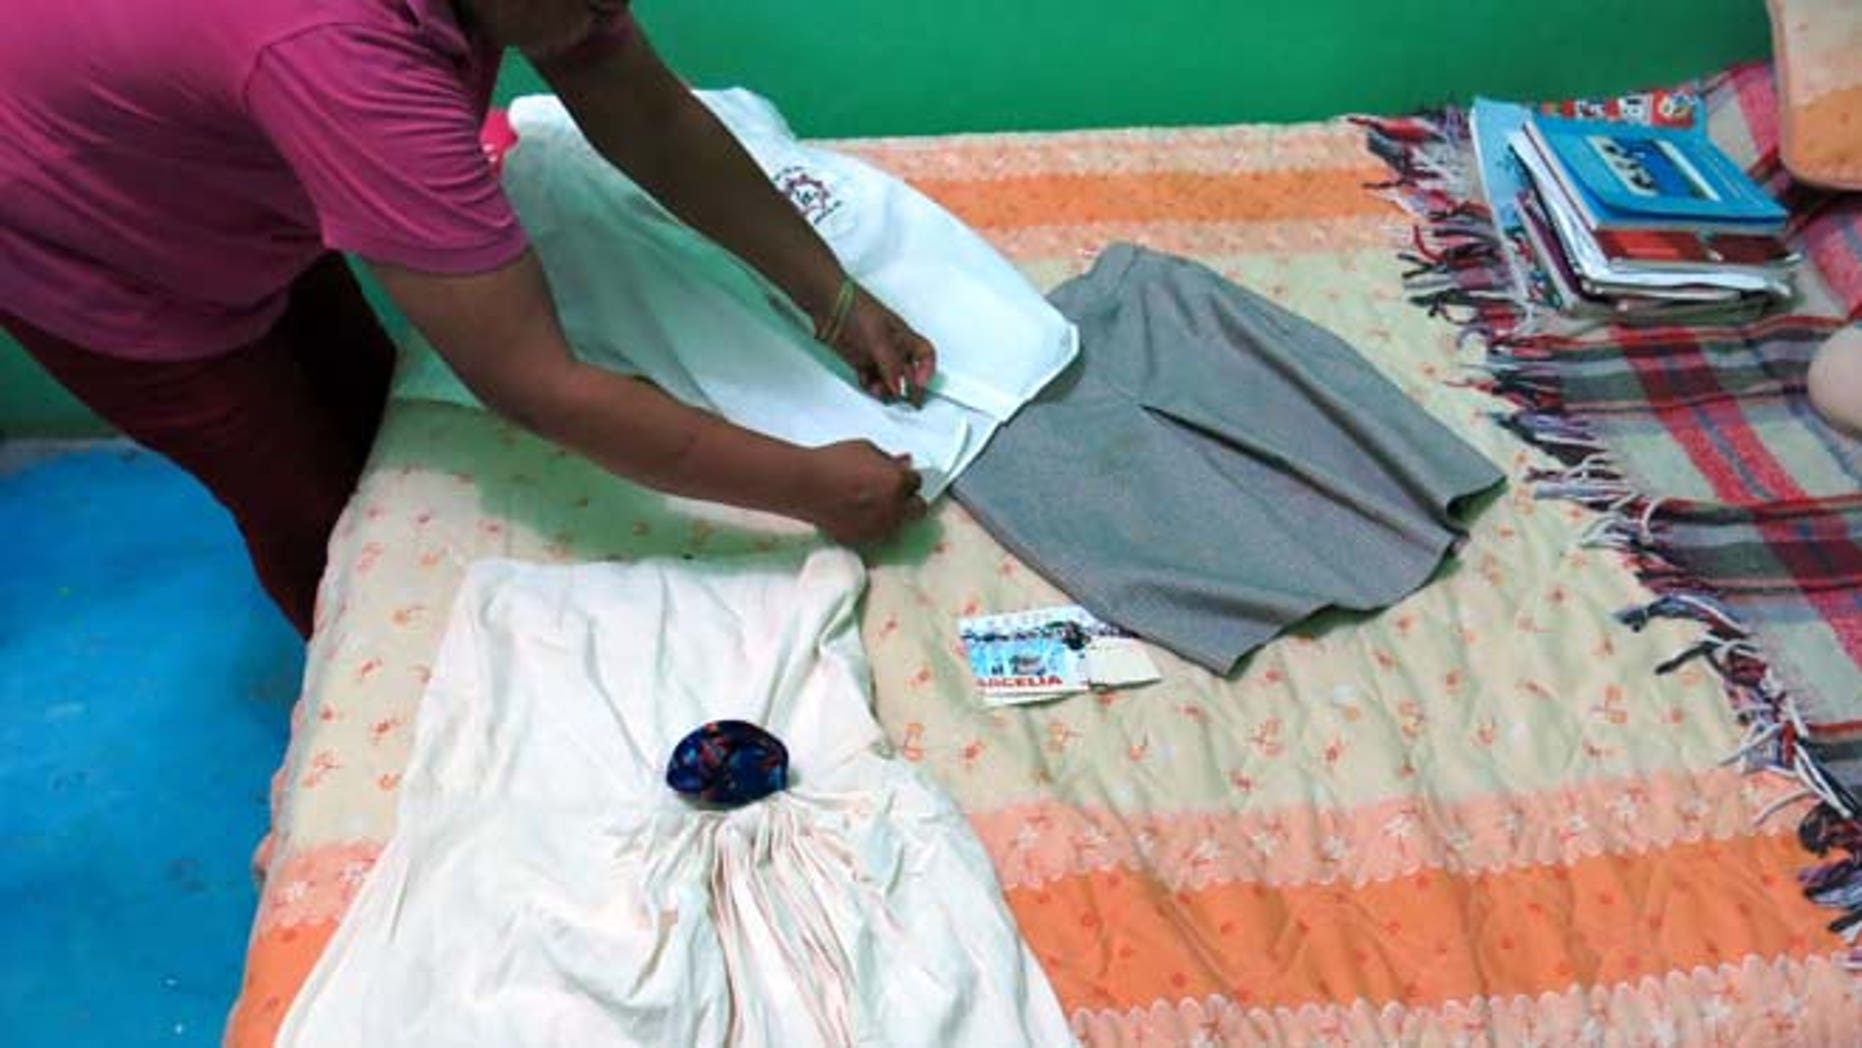 In this Sept. 15, 2014 photo, a woman who did not want to give her name for fear of reprisals, lays out the clothes of her late 15-year-old daughter Erika Gomez Gonzalez, on a bed at her home in Arcelia, Mexico. (AP)